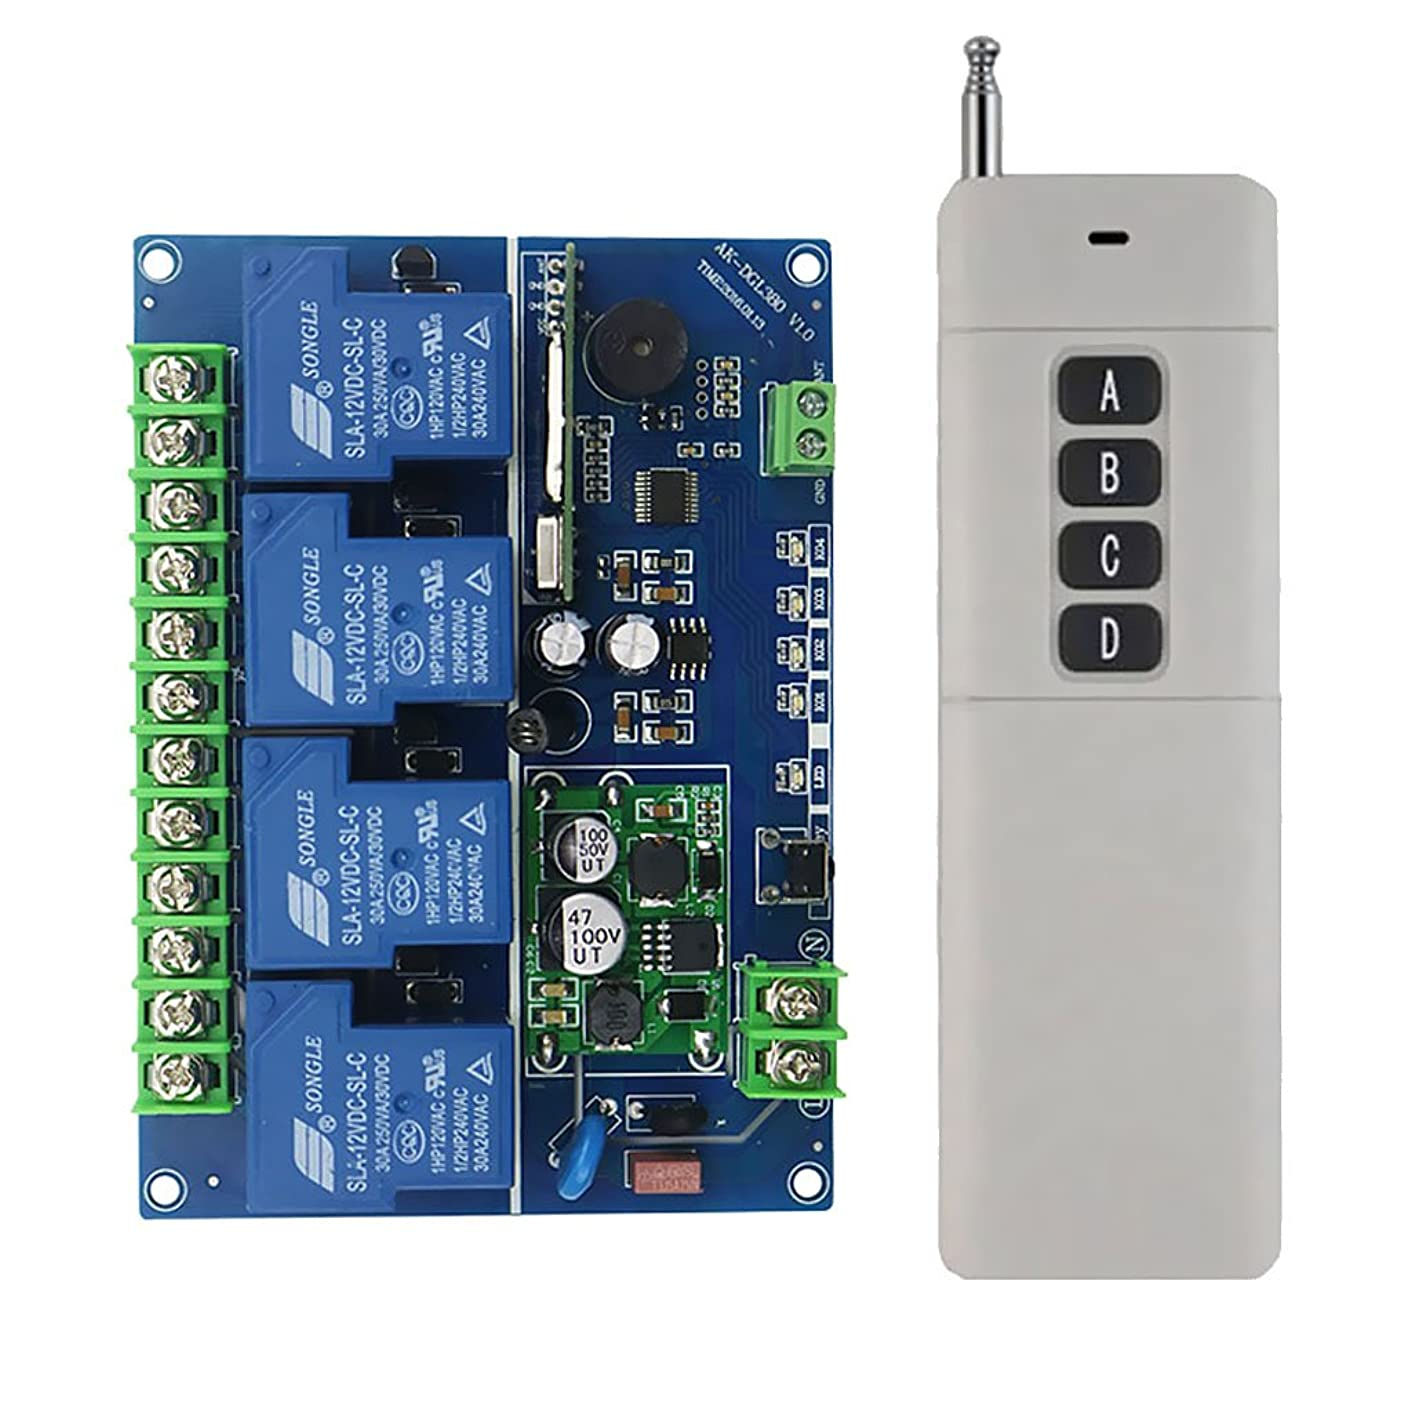 MonkeyJack DC12-48V 4CH Wireless Remote Control Switch Receiver Module+ Remote Controller Set 3000m